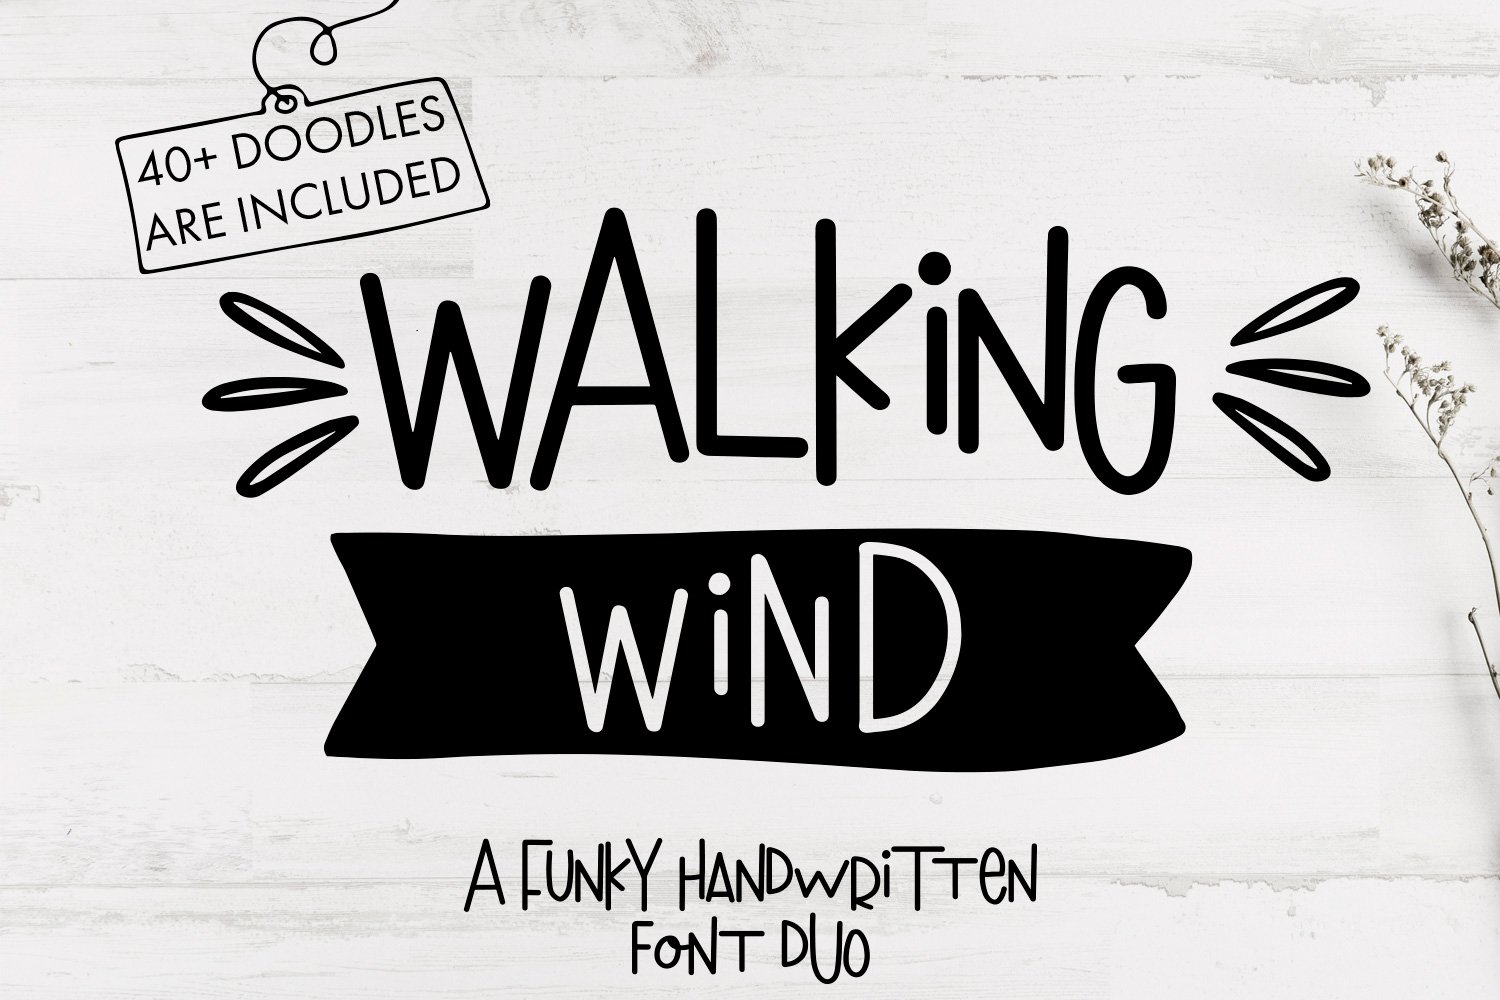 Walking Wind - A funky handwritten font duo with doodles example image 1